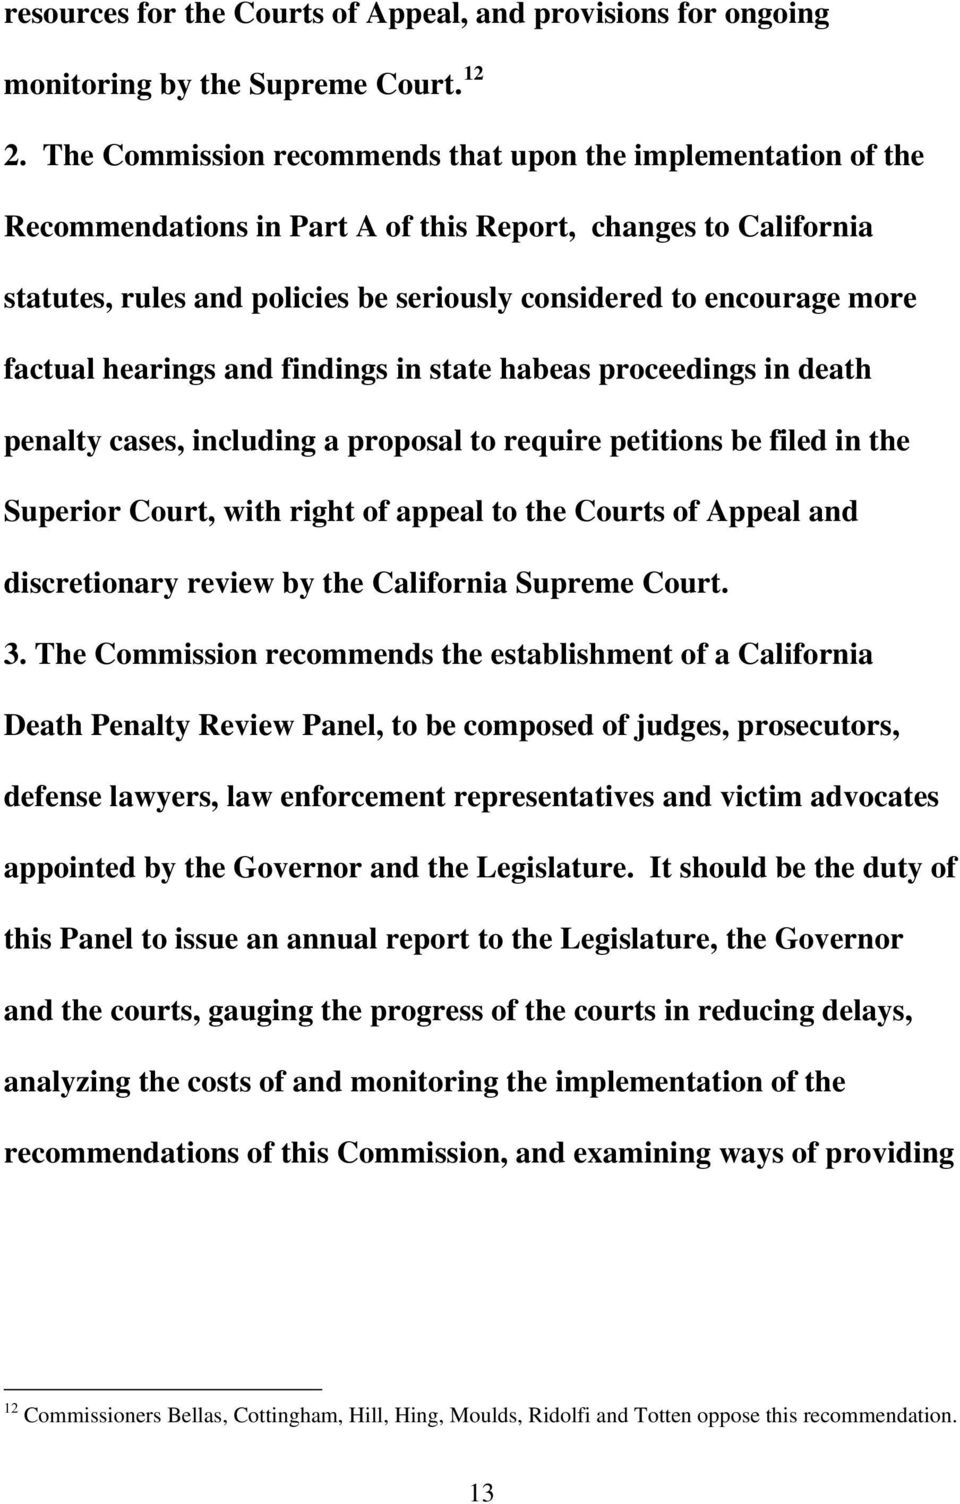 factual hearings and findings in state habeas proceedings in death penalty cases, including a proposal to require petitions be filed in the Superior Court, with right of appeal to the Courts of